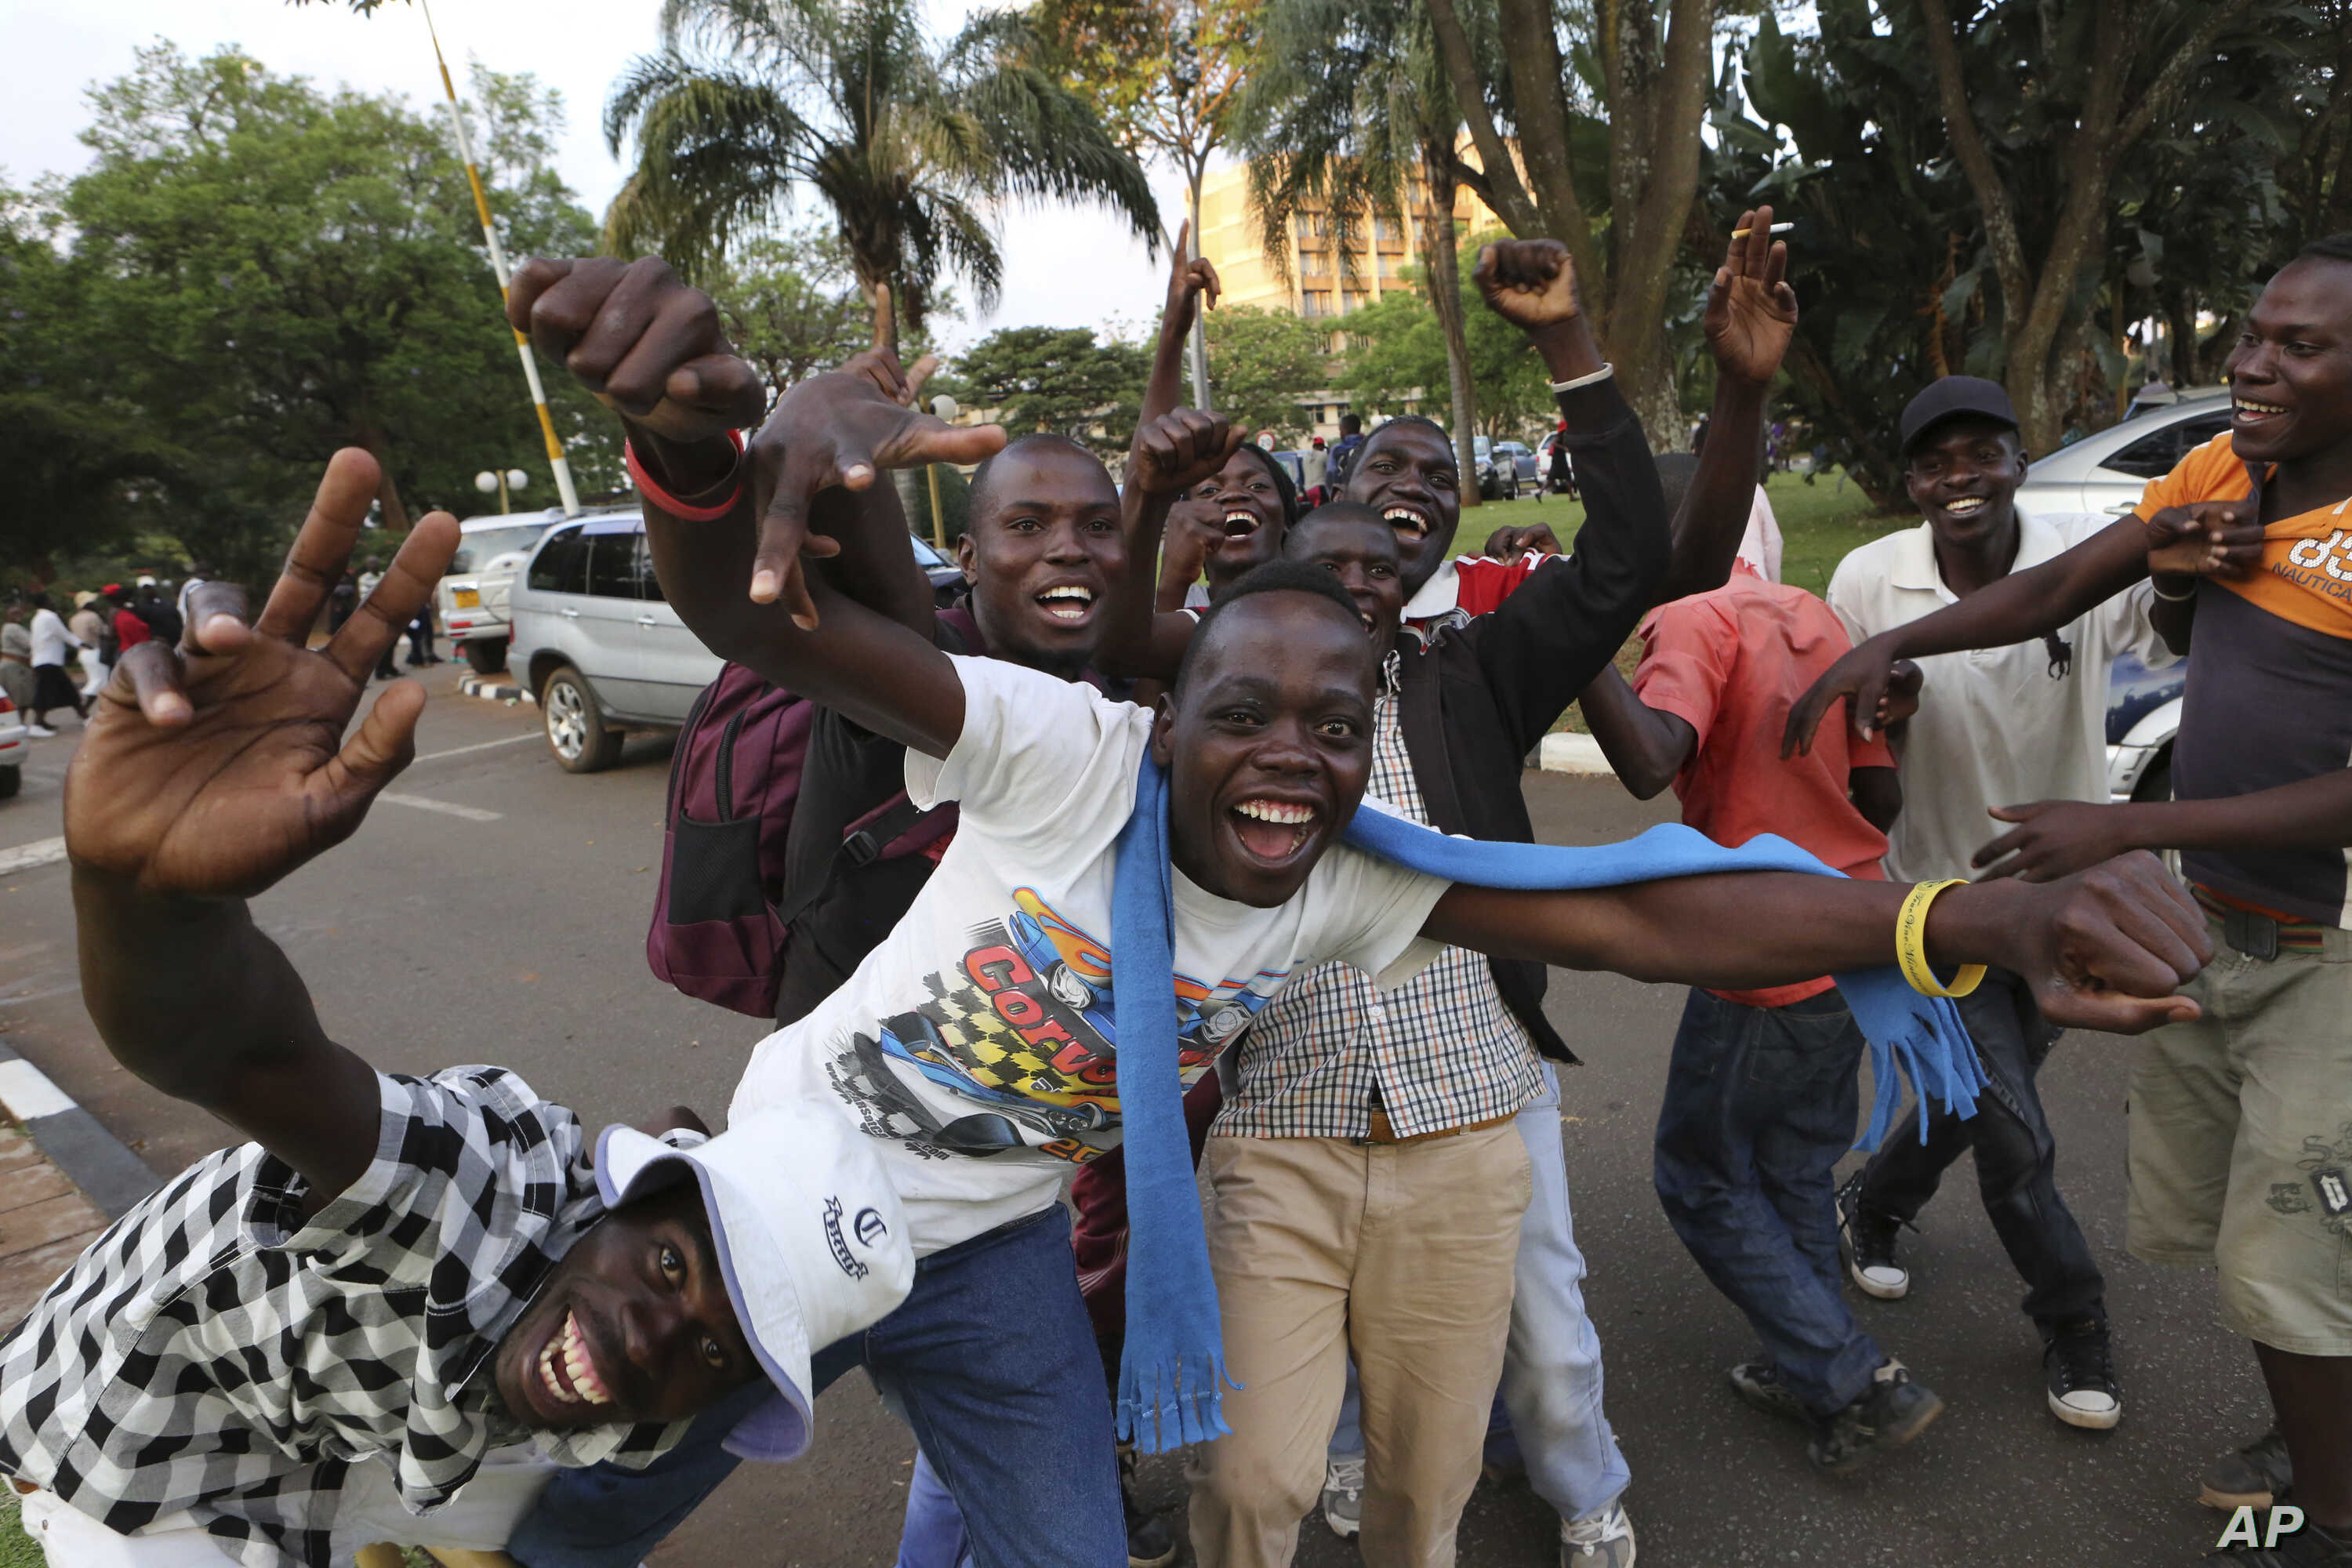 Zimbabweans celebrate in Harare, Nov, 21, 2017, after the resignation of President Robert Mugabe.